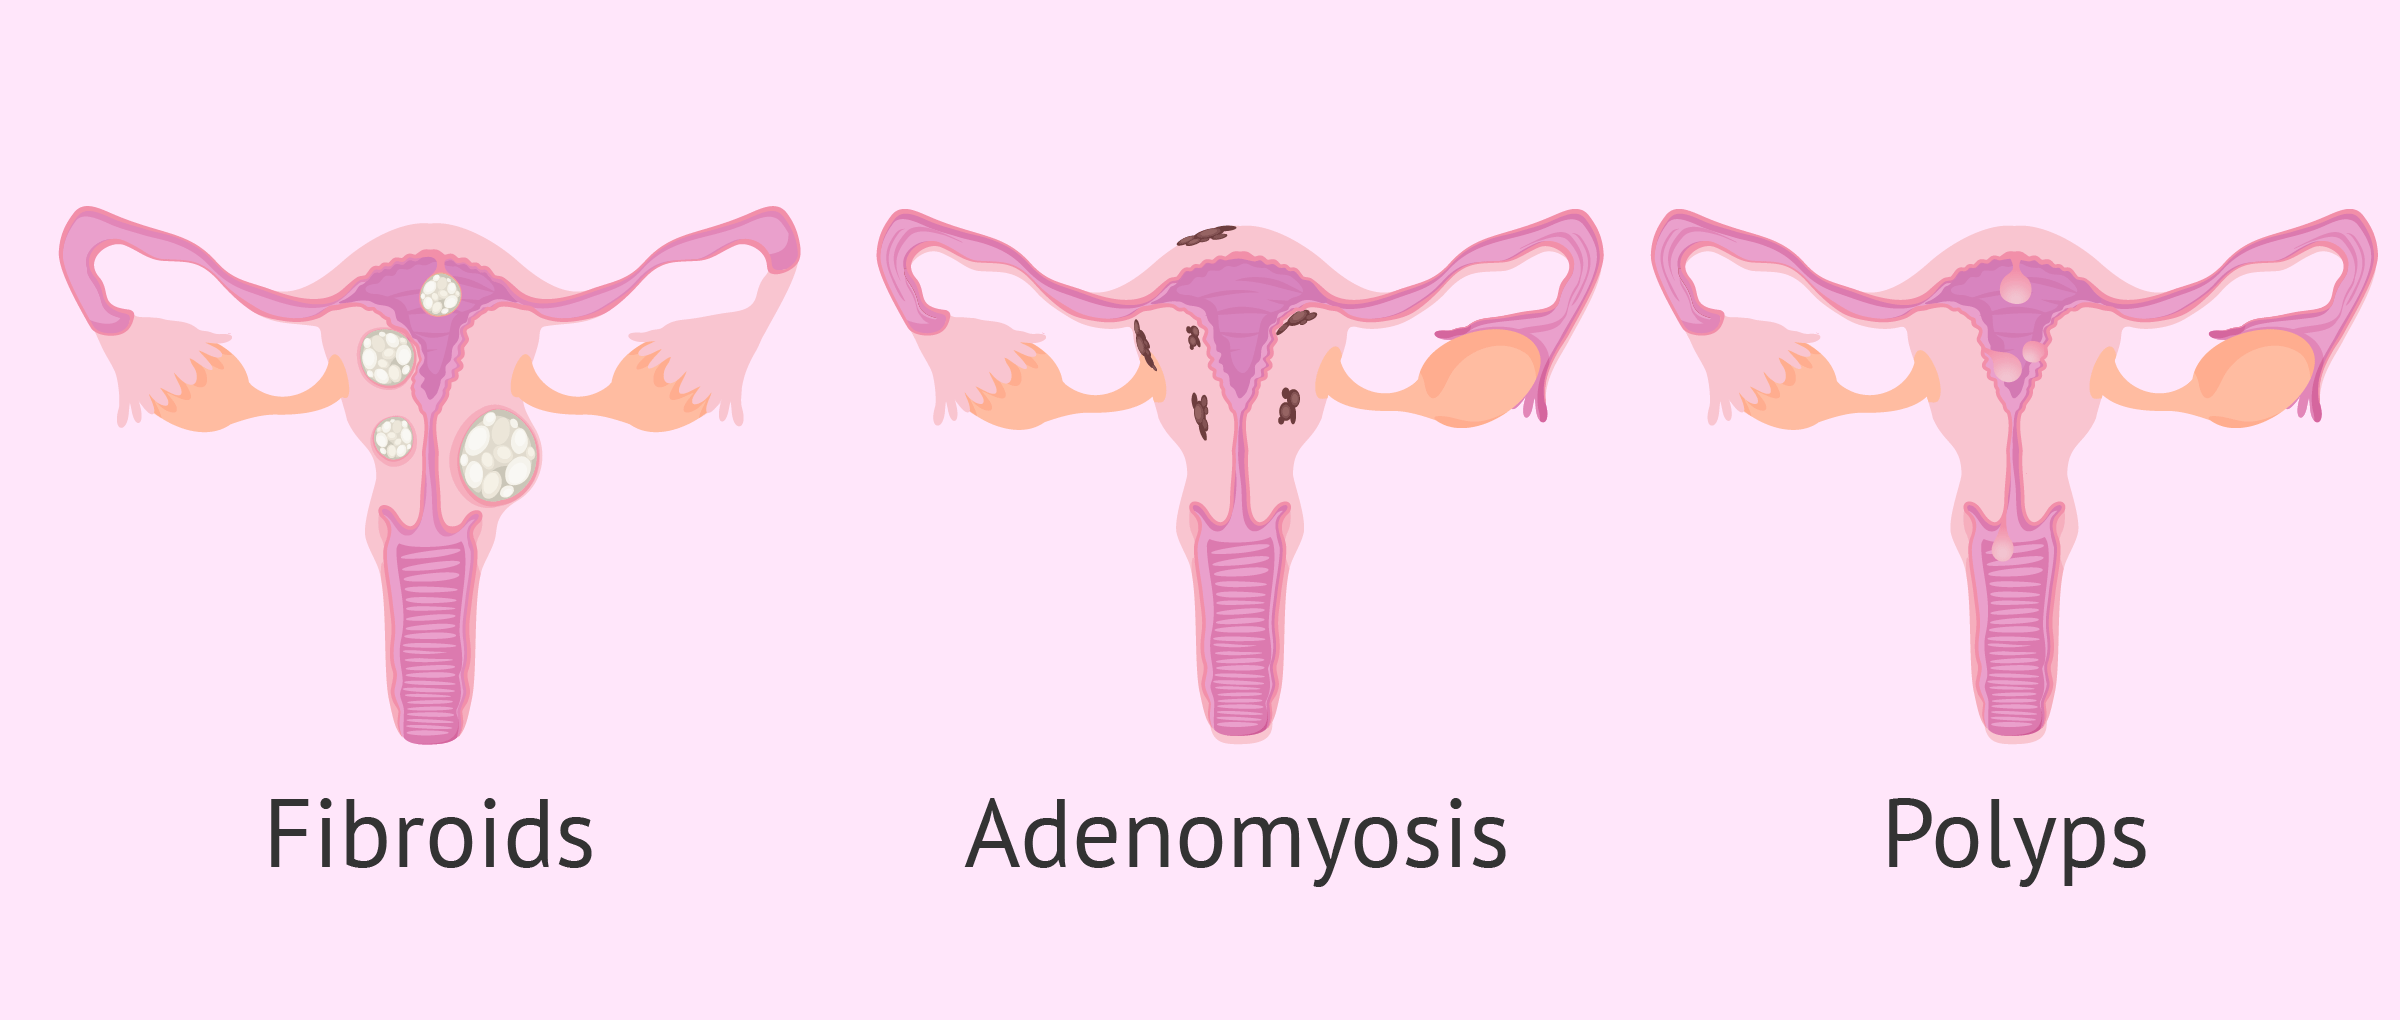 Tumors of the uterus